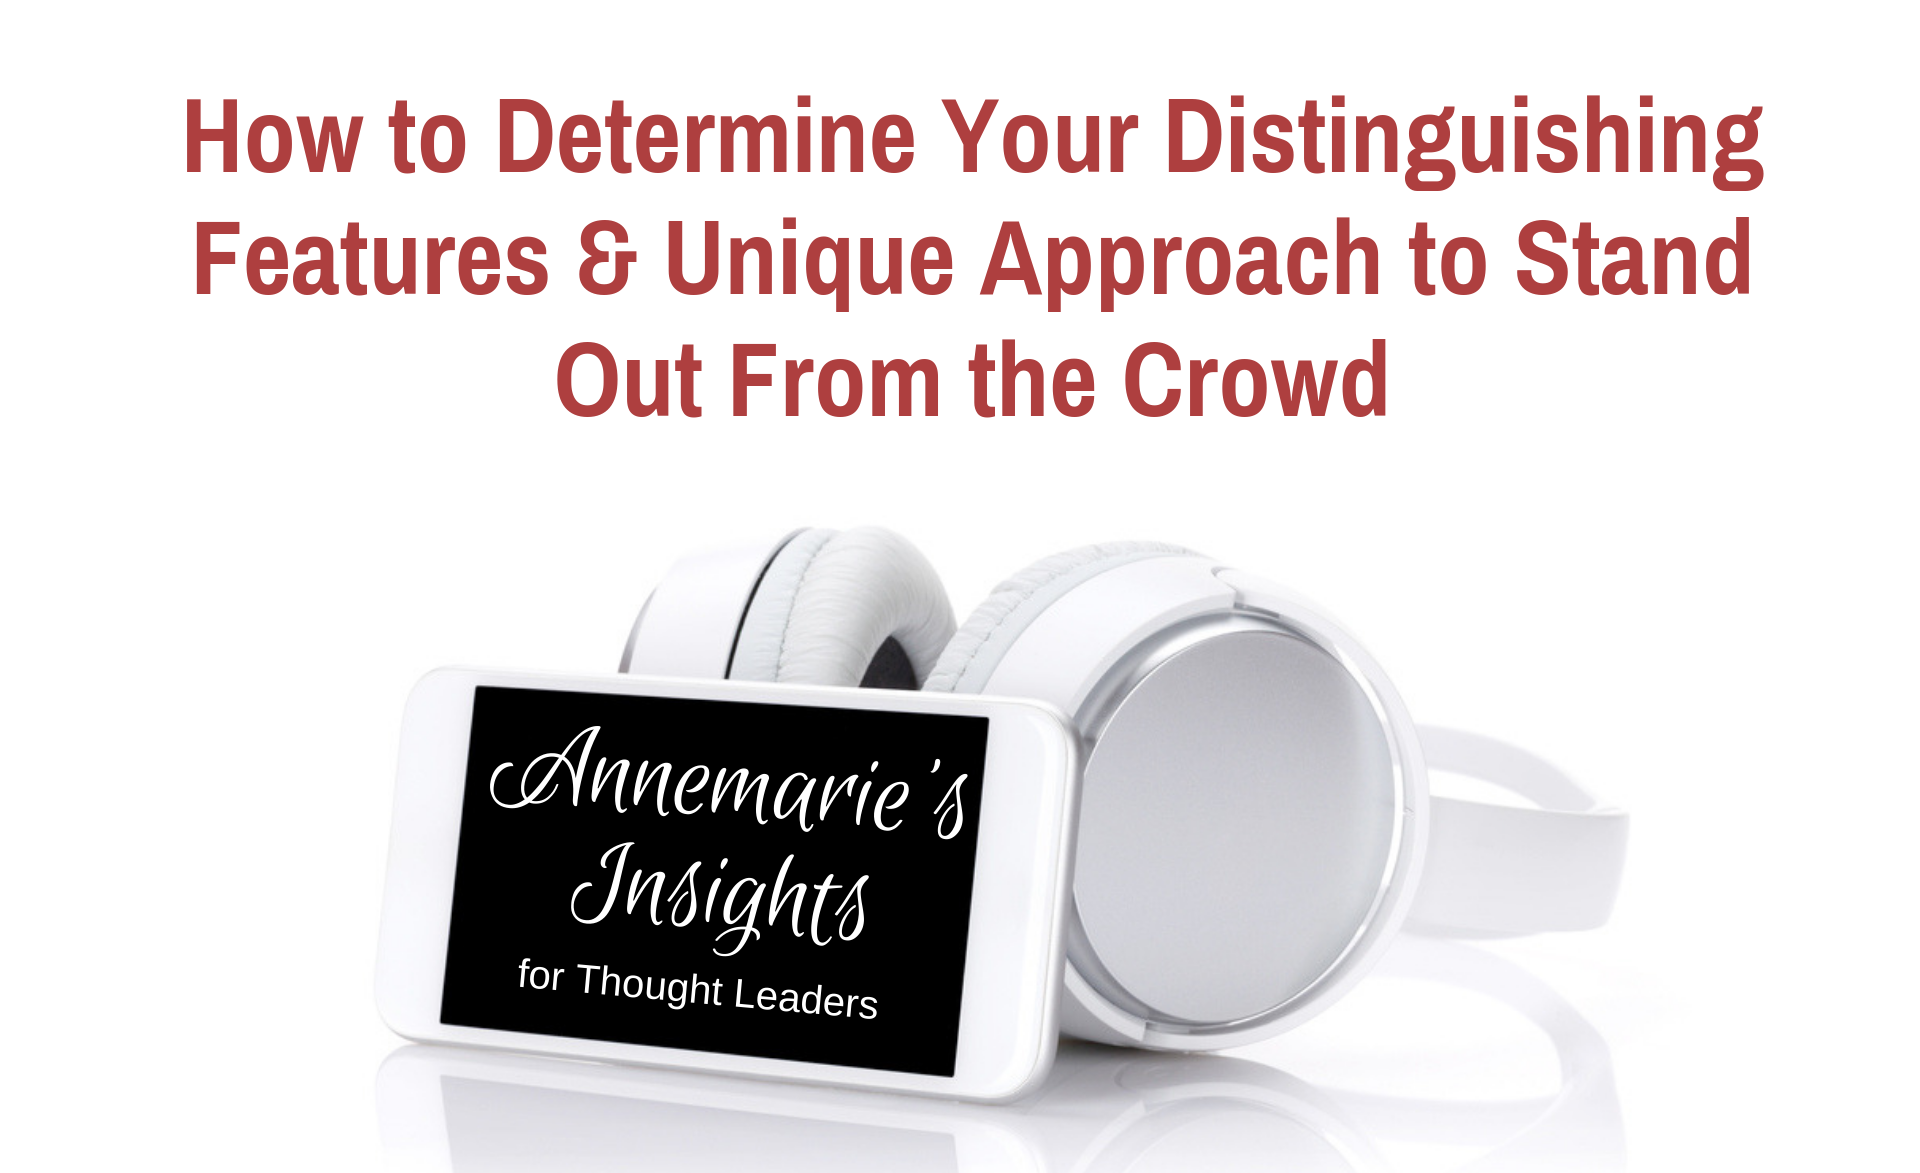 How to Determine Your Distinguishing Features & Unique Approach to Stand Out From the Crowd